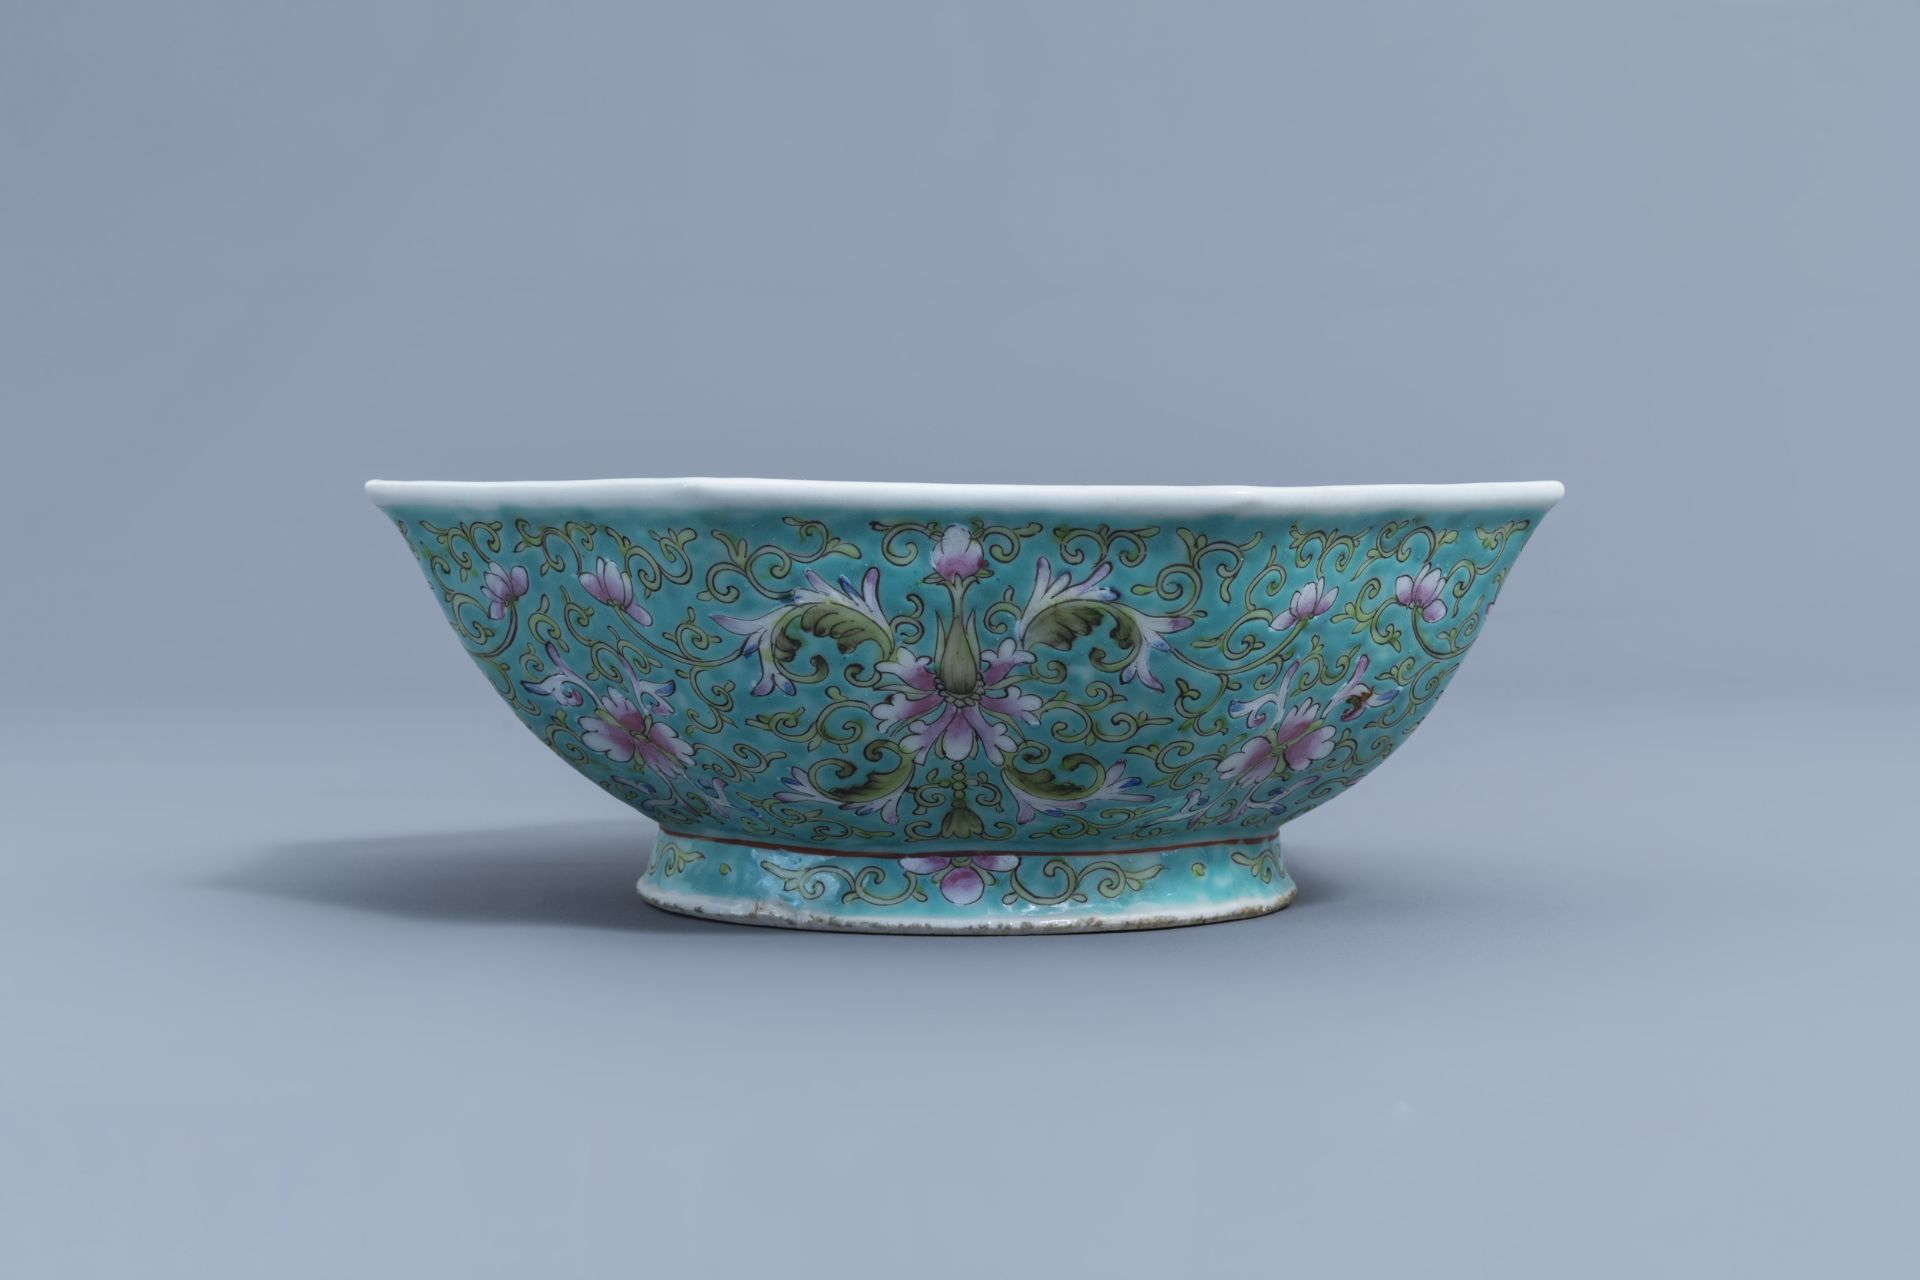 Two Chinese famille rose jardinires and a bowl with floral design, 20th C. - Image 13 of 15